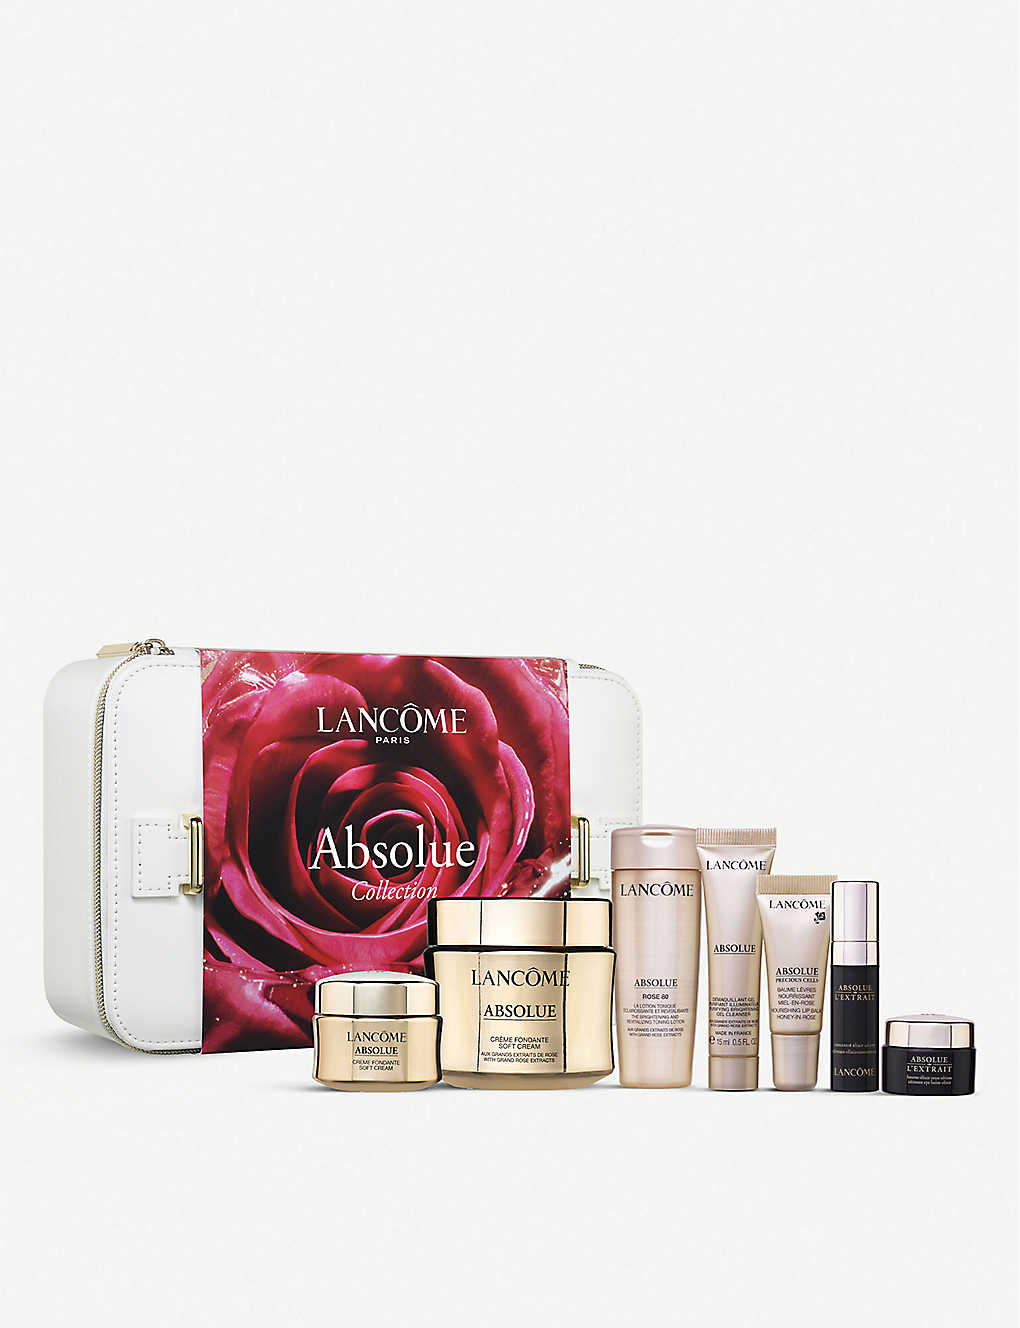 LANCOME: Absolue Collection luxury skincare gift set